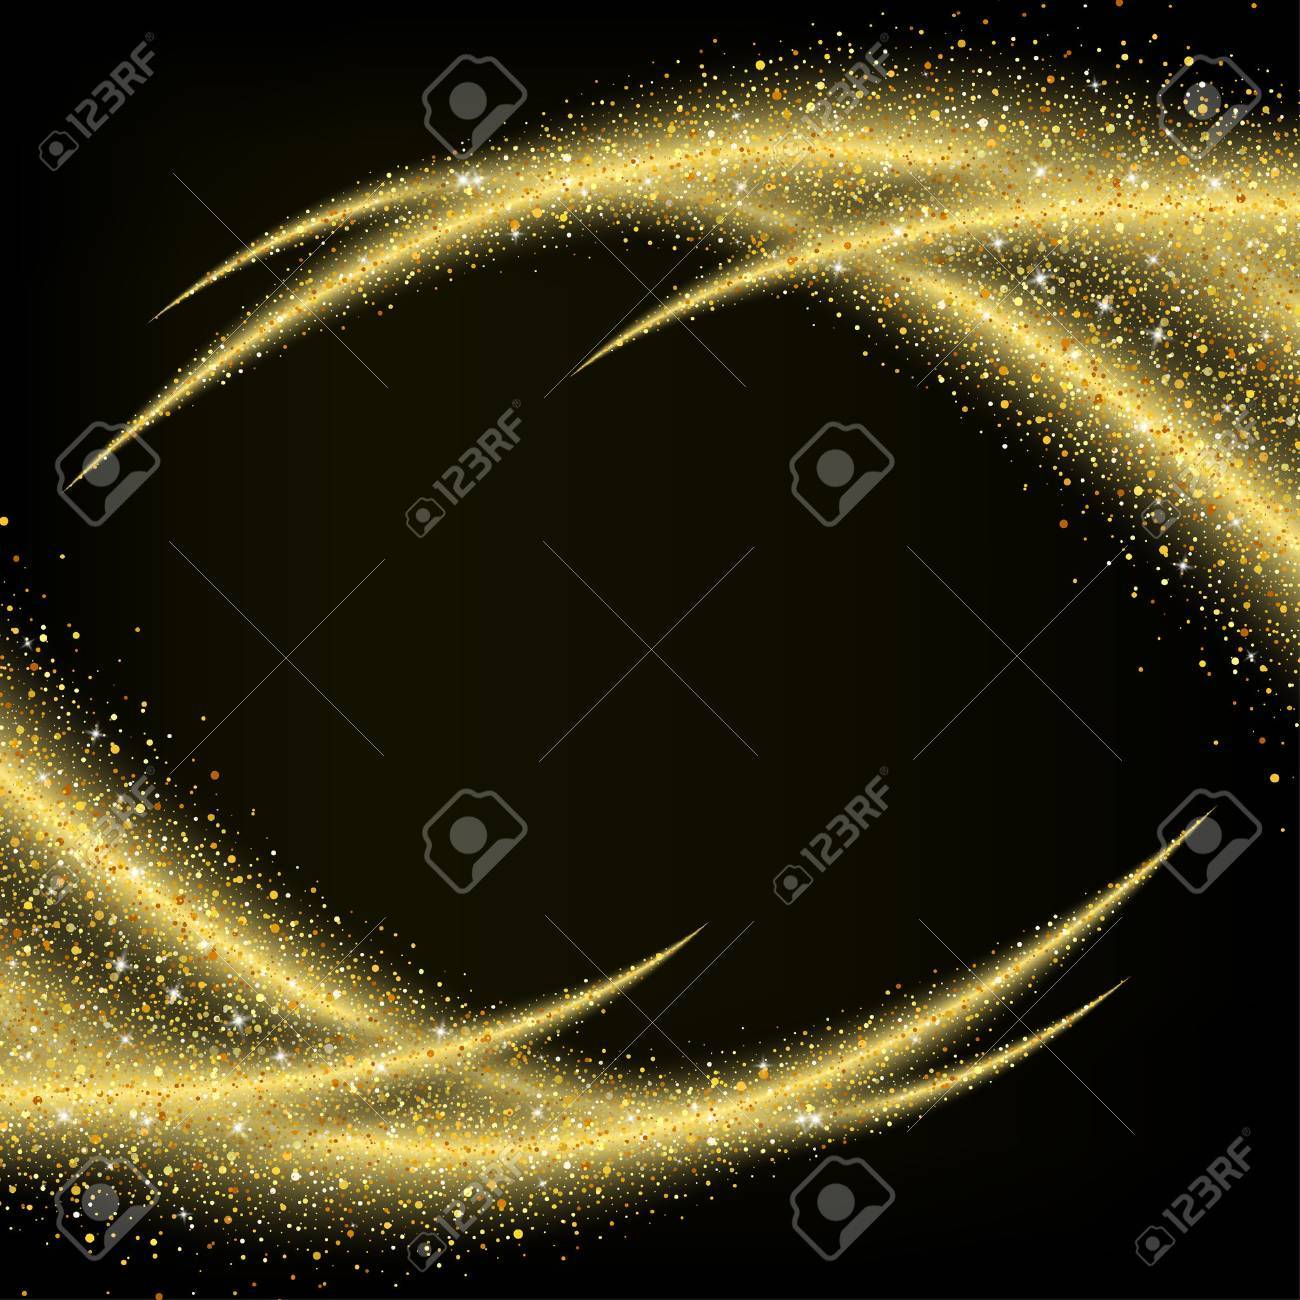 Abstract gold dust glitter star wave background, design template - 49599252